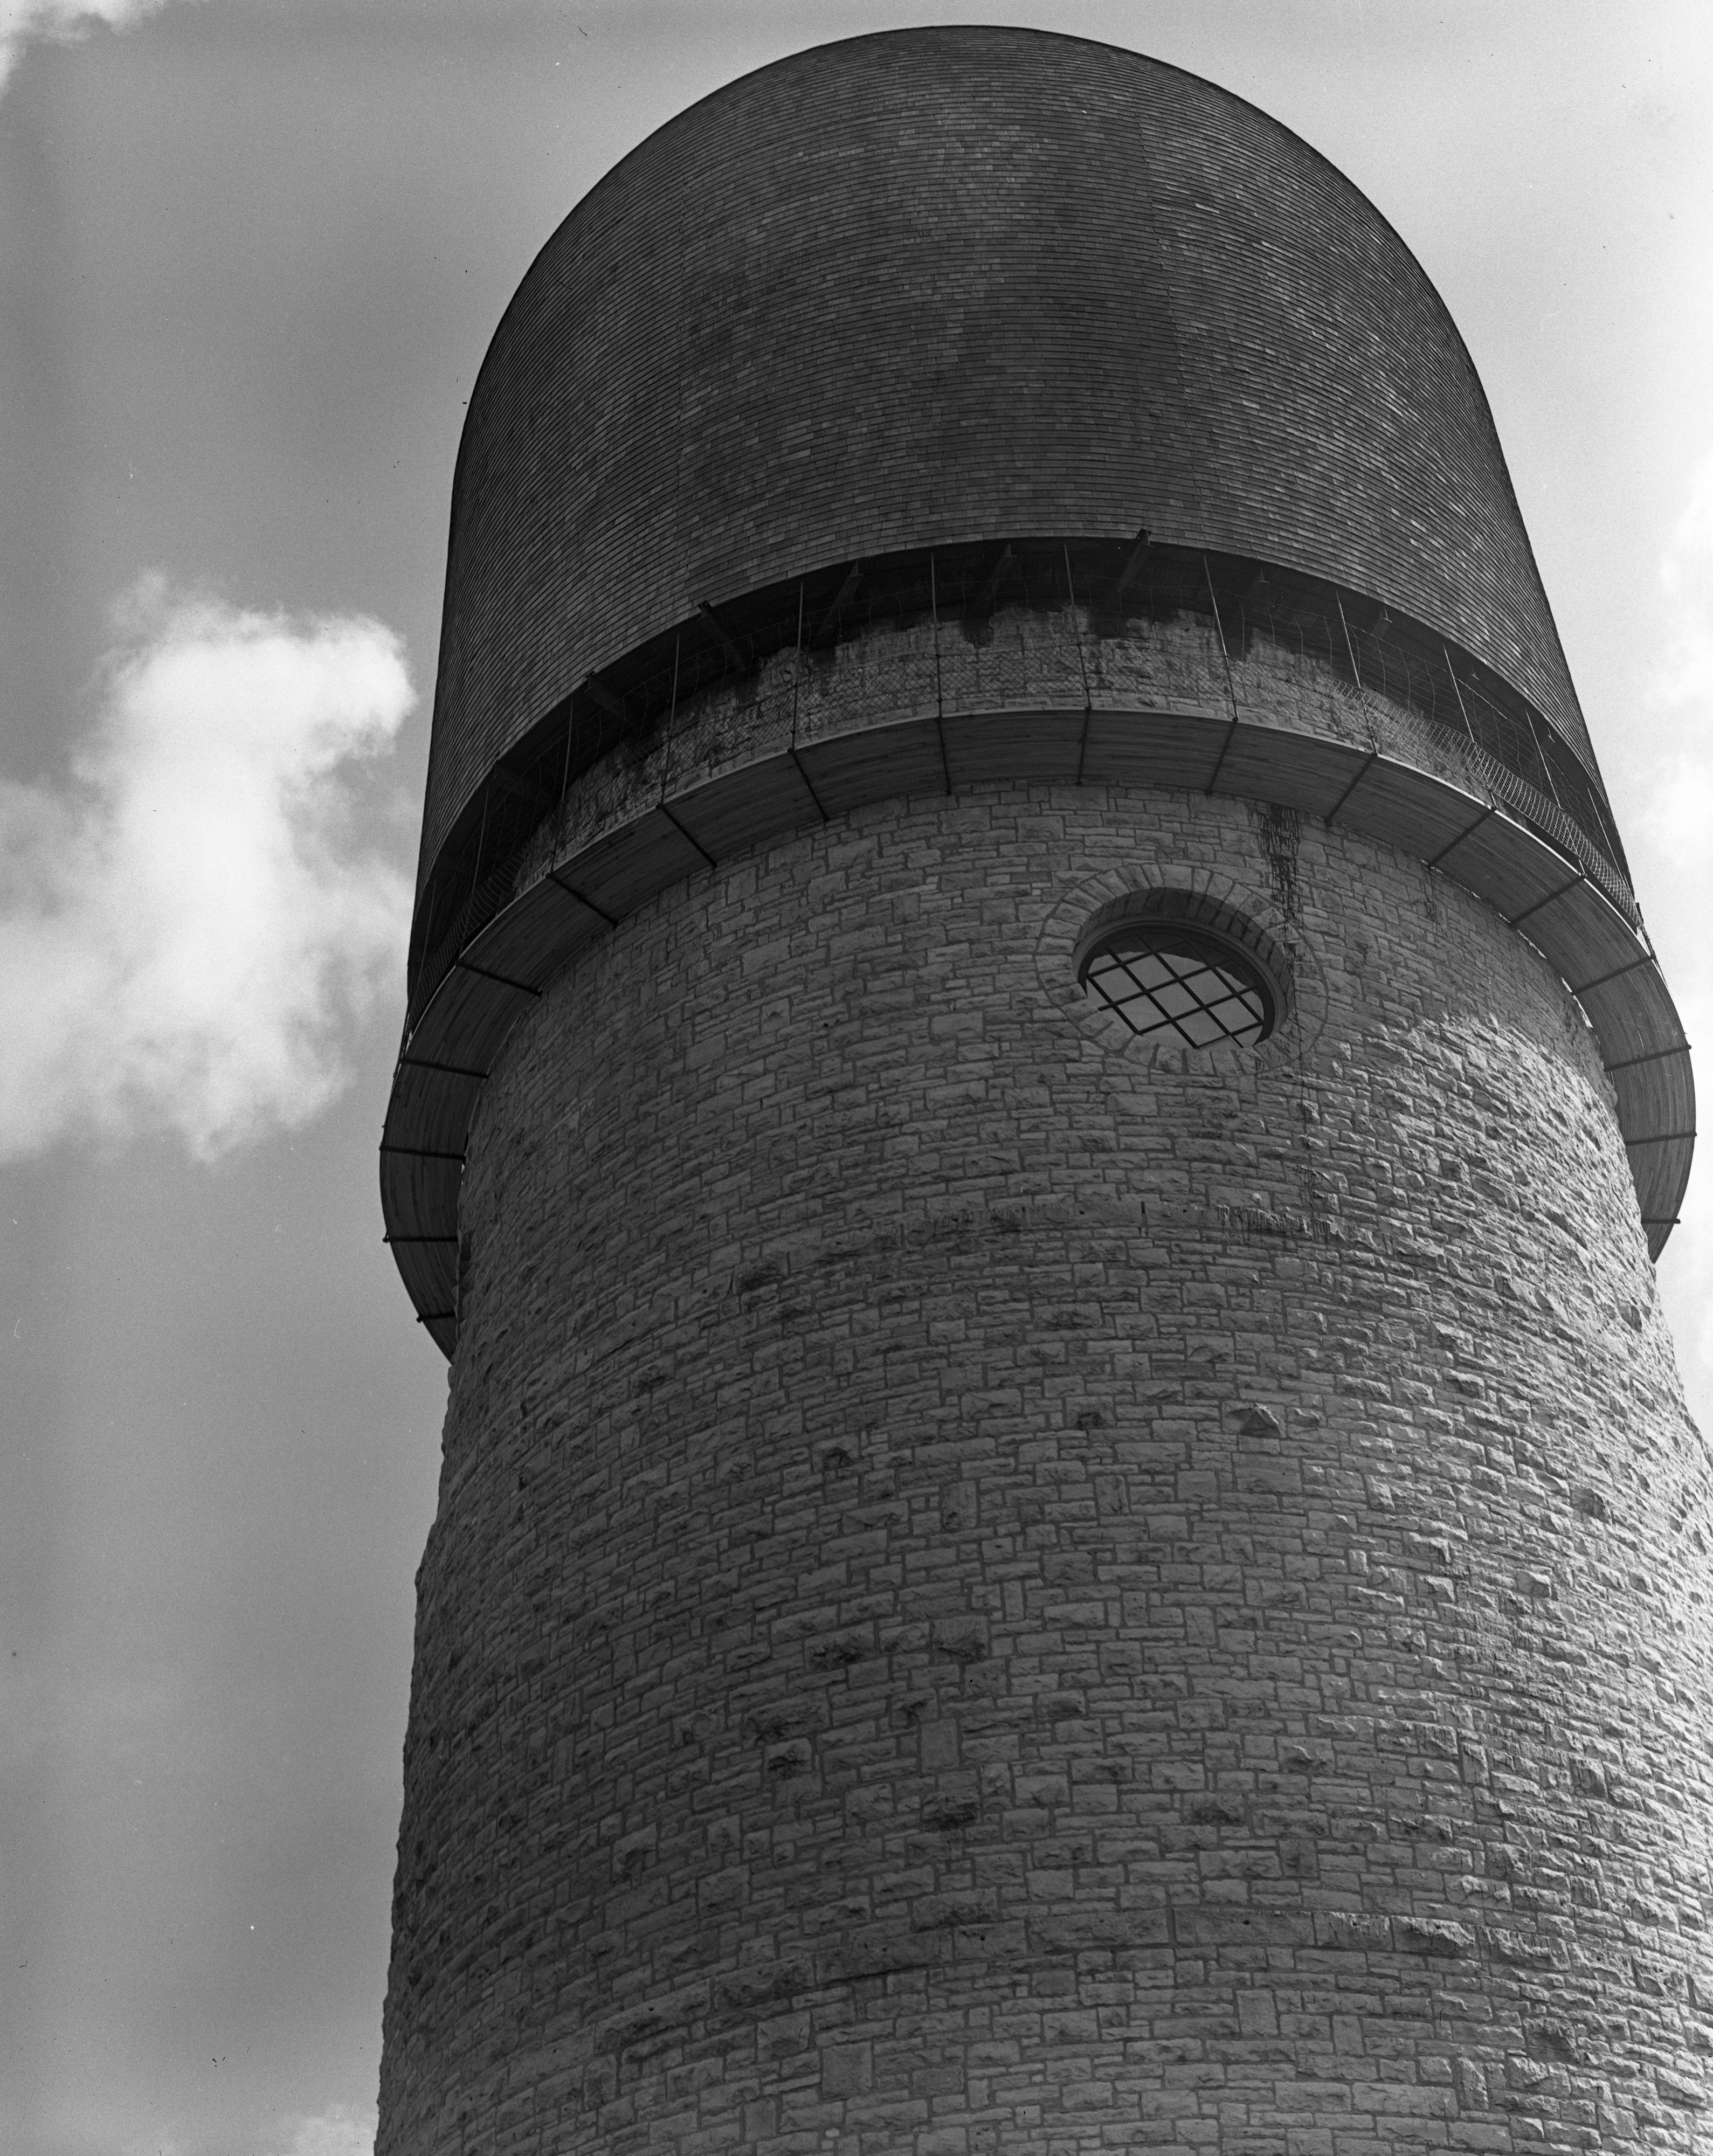 Ypsilanti Water Tower, April 1939 image